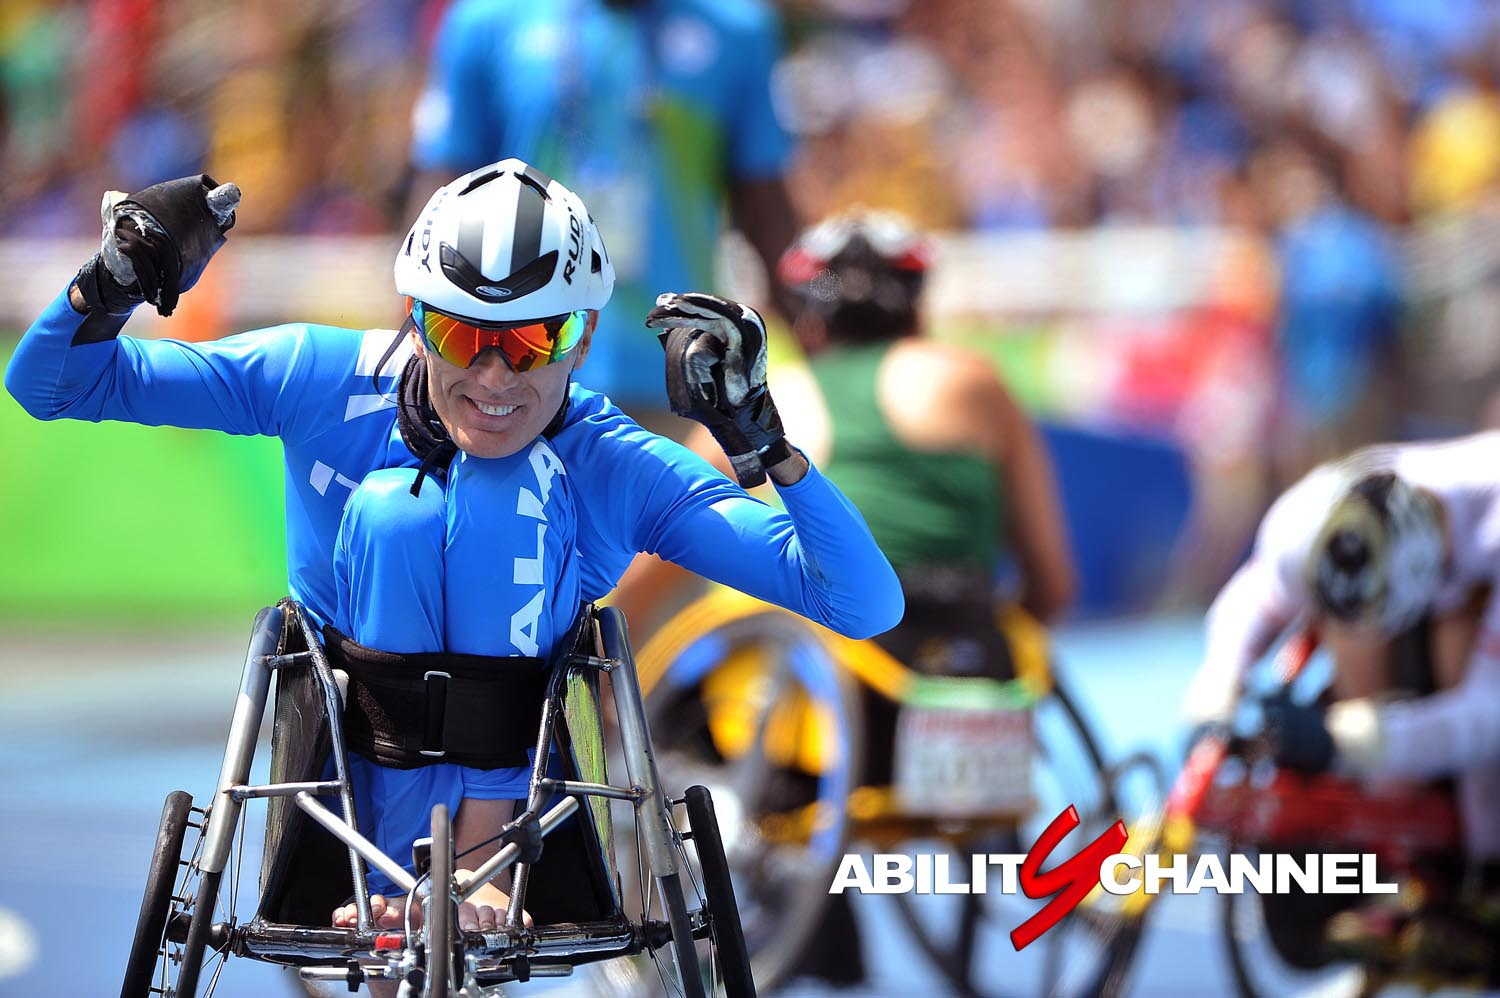 maratona di tokyo-maratona di tokyo 2020-tokyo 2020-ability channel-paralimpiadi tokyo 2020-giochi paralimpici